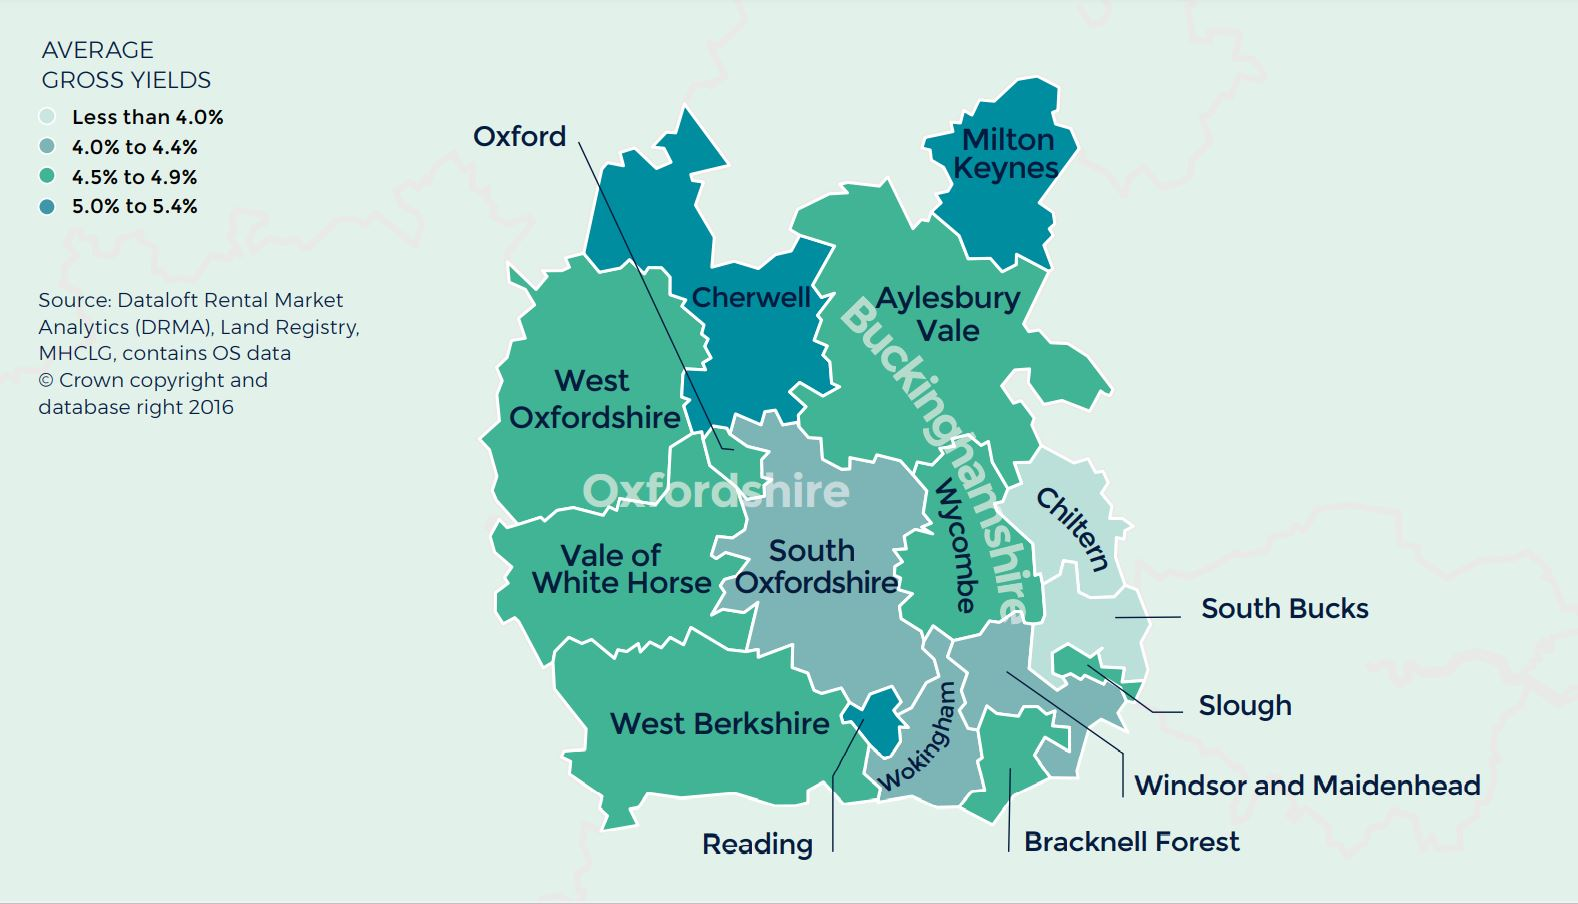 Thames Valley Berkshire Oxfordshire Buckinghamshire Regional Property Market Report Autumn 2020